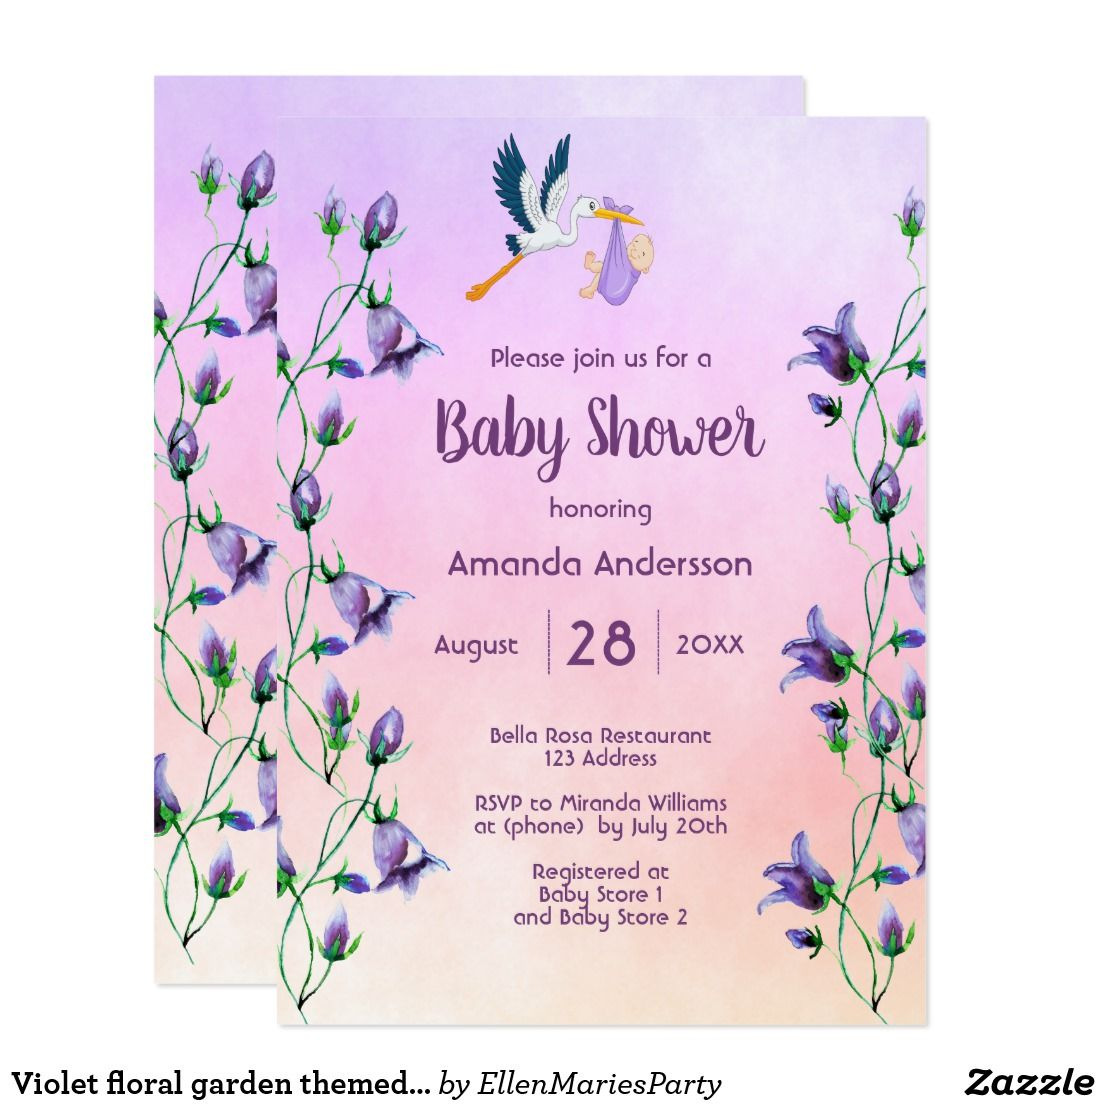 Baby Shower Invitation Letter Stunning Violet Floral Garden Themed Baby Shower Invitation  Babies And Baby .